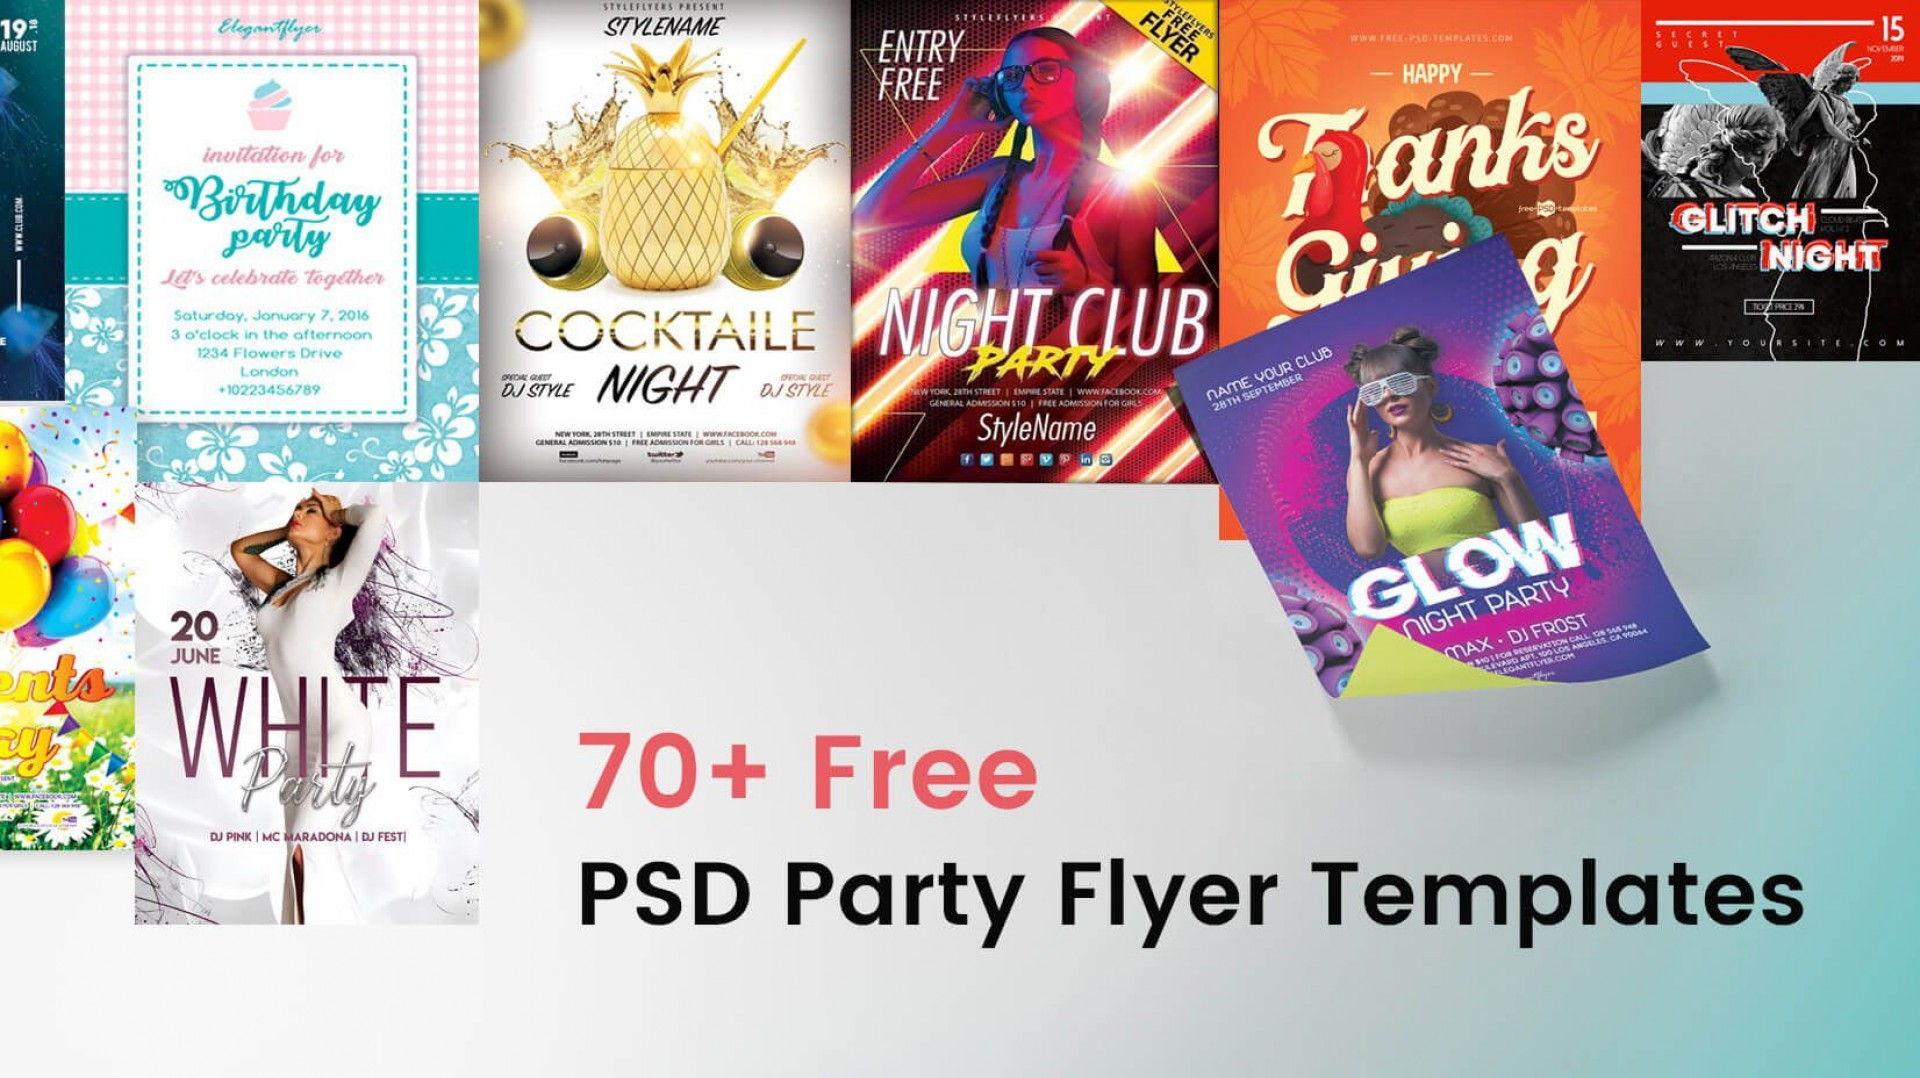 008 Dreaded Free Birthday Flyer Template Psd Picture  Foam Party - Neon Glow Download Pool1920